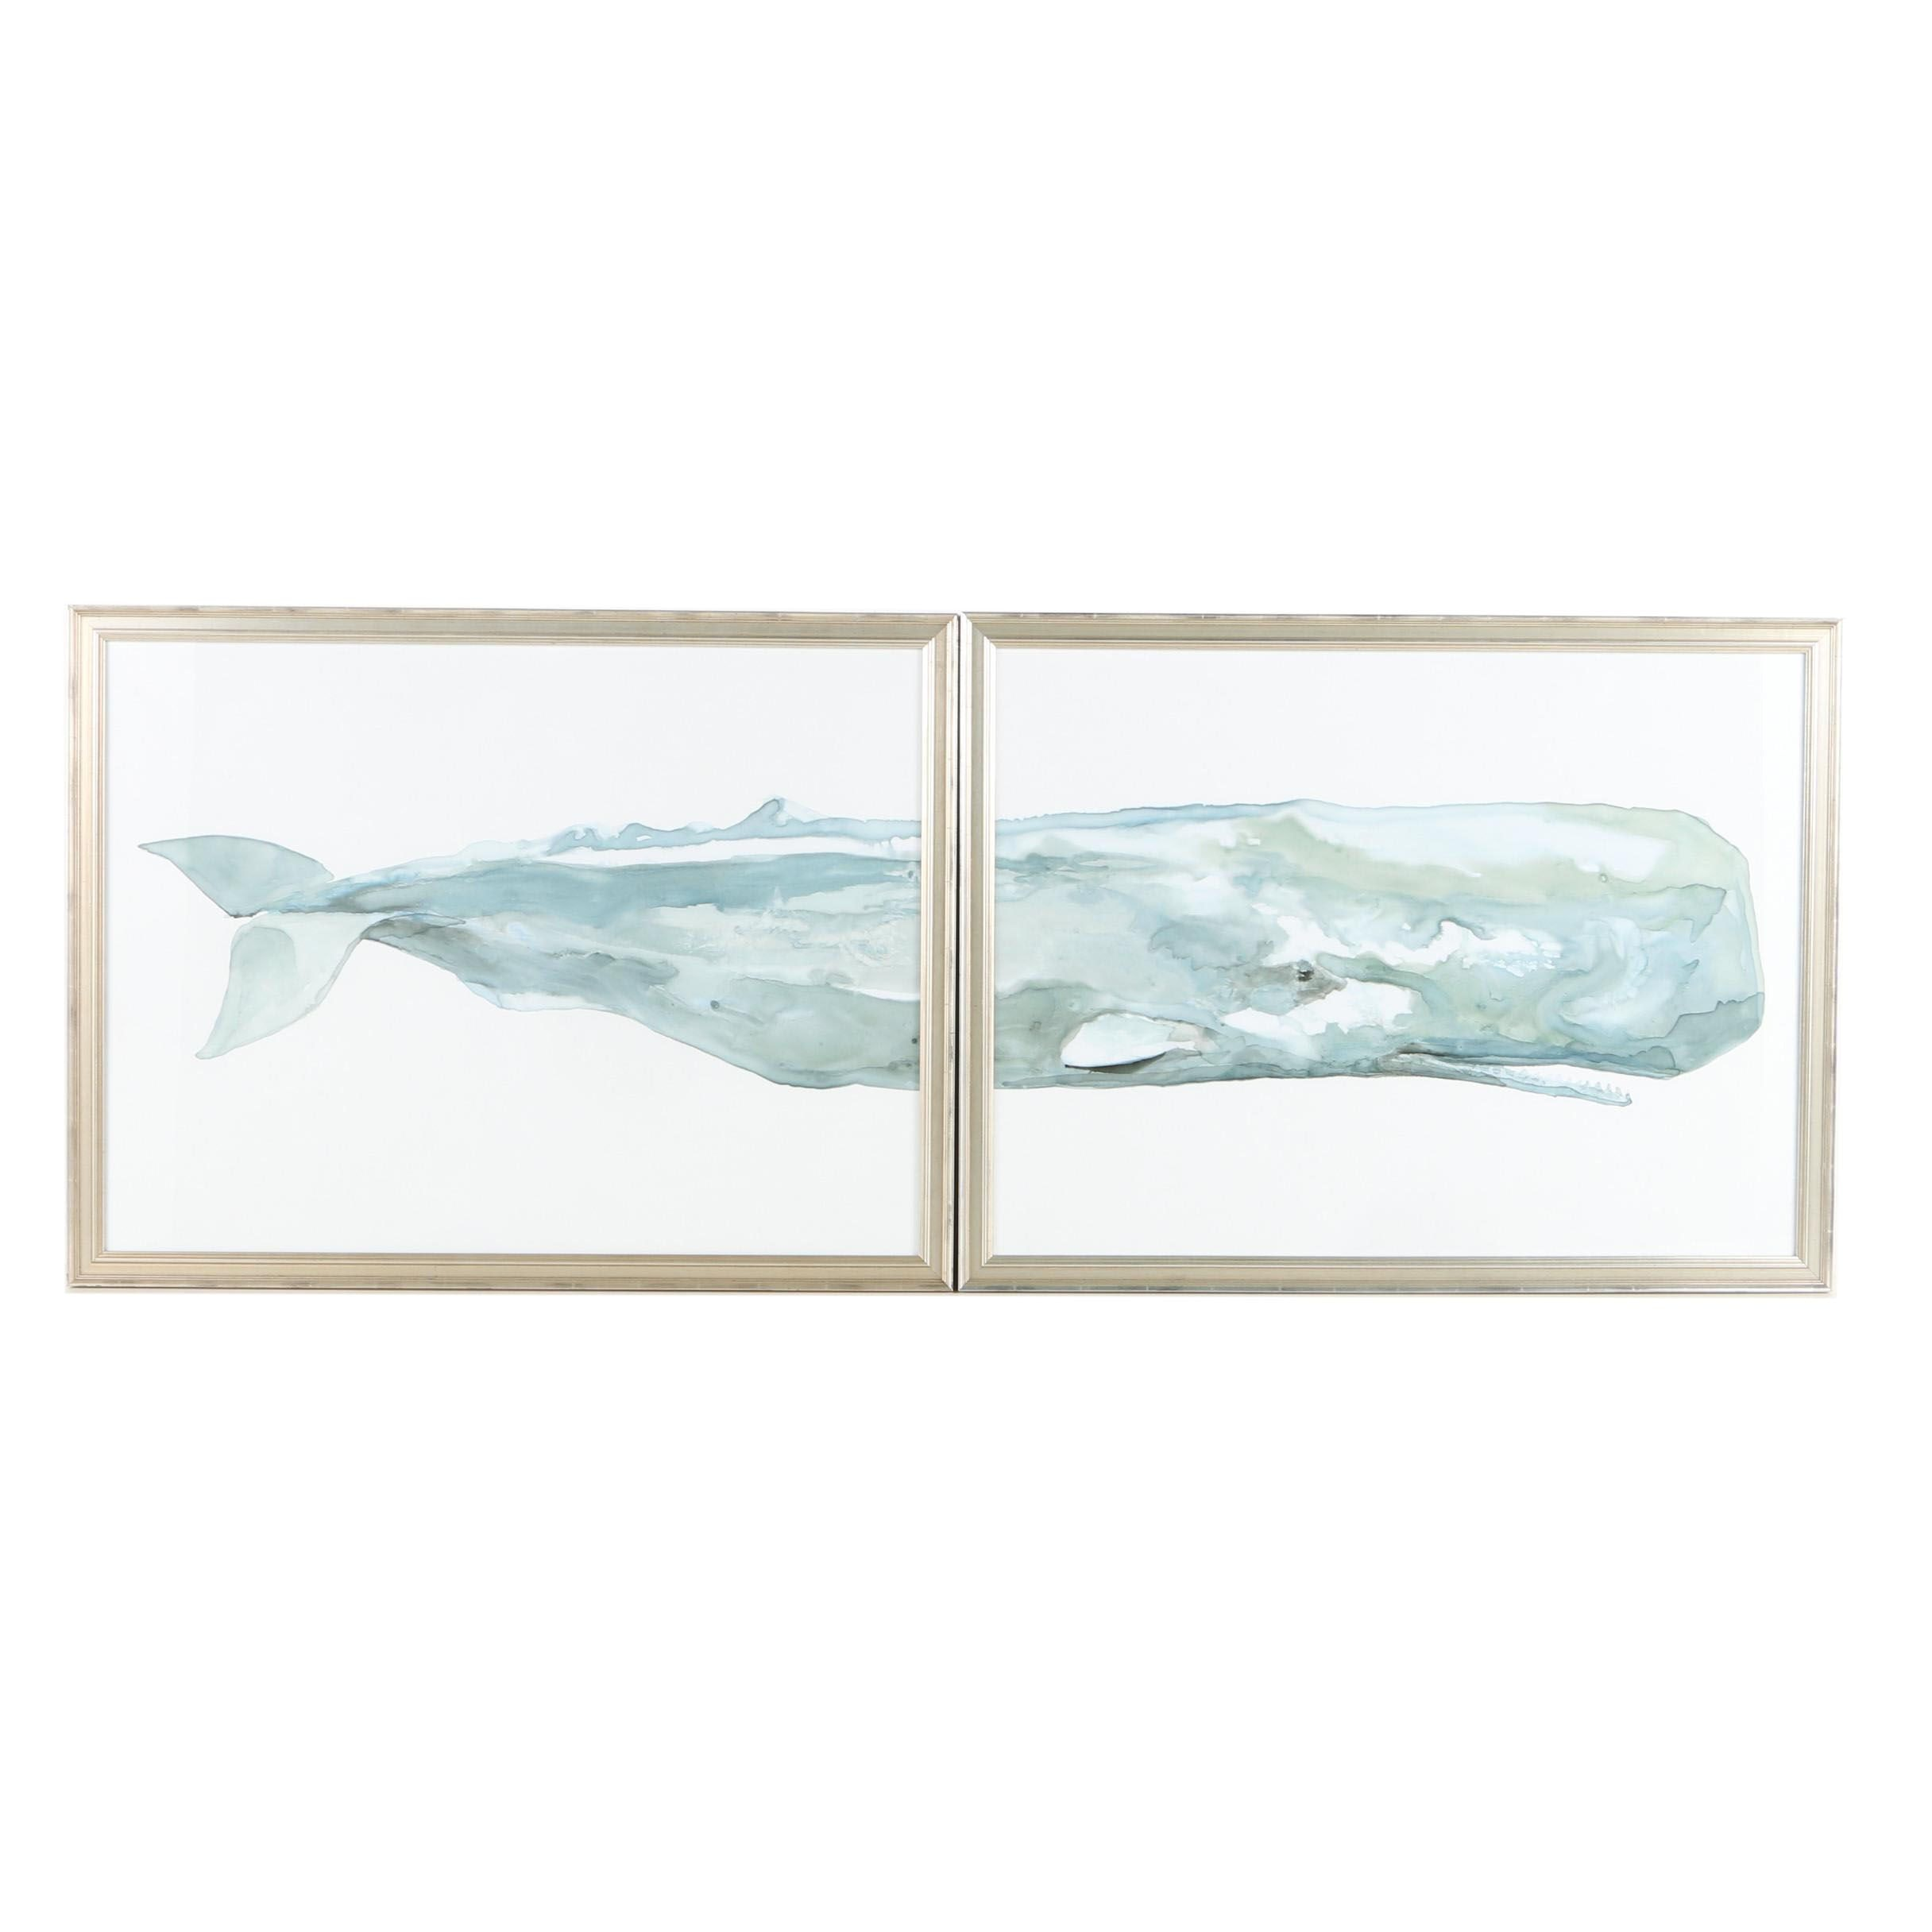 Giclee Print Diptych of a Sperm Whale